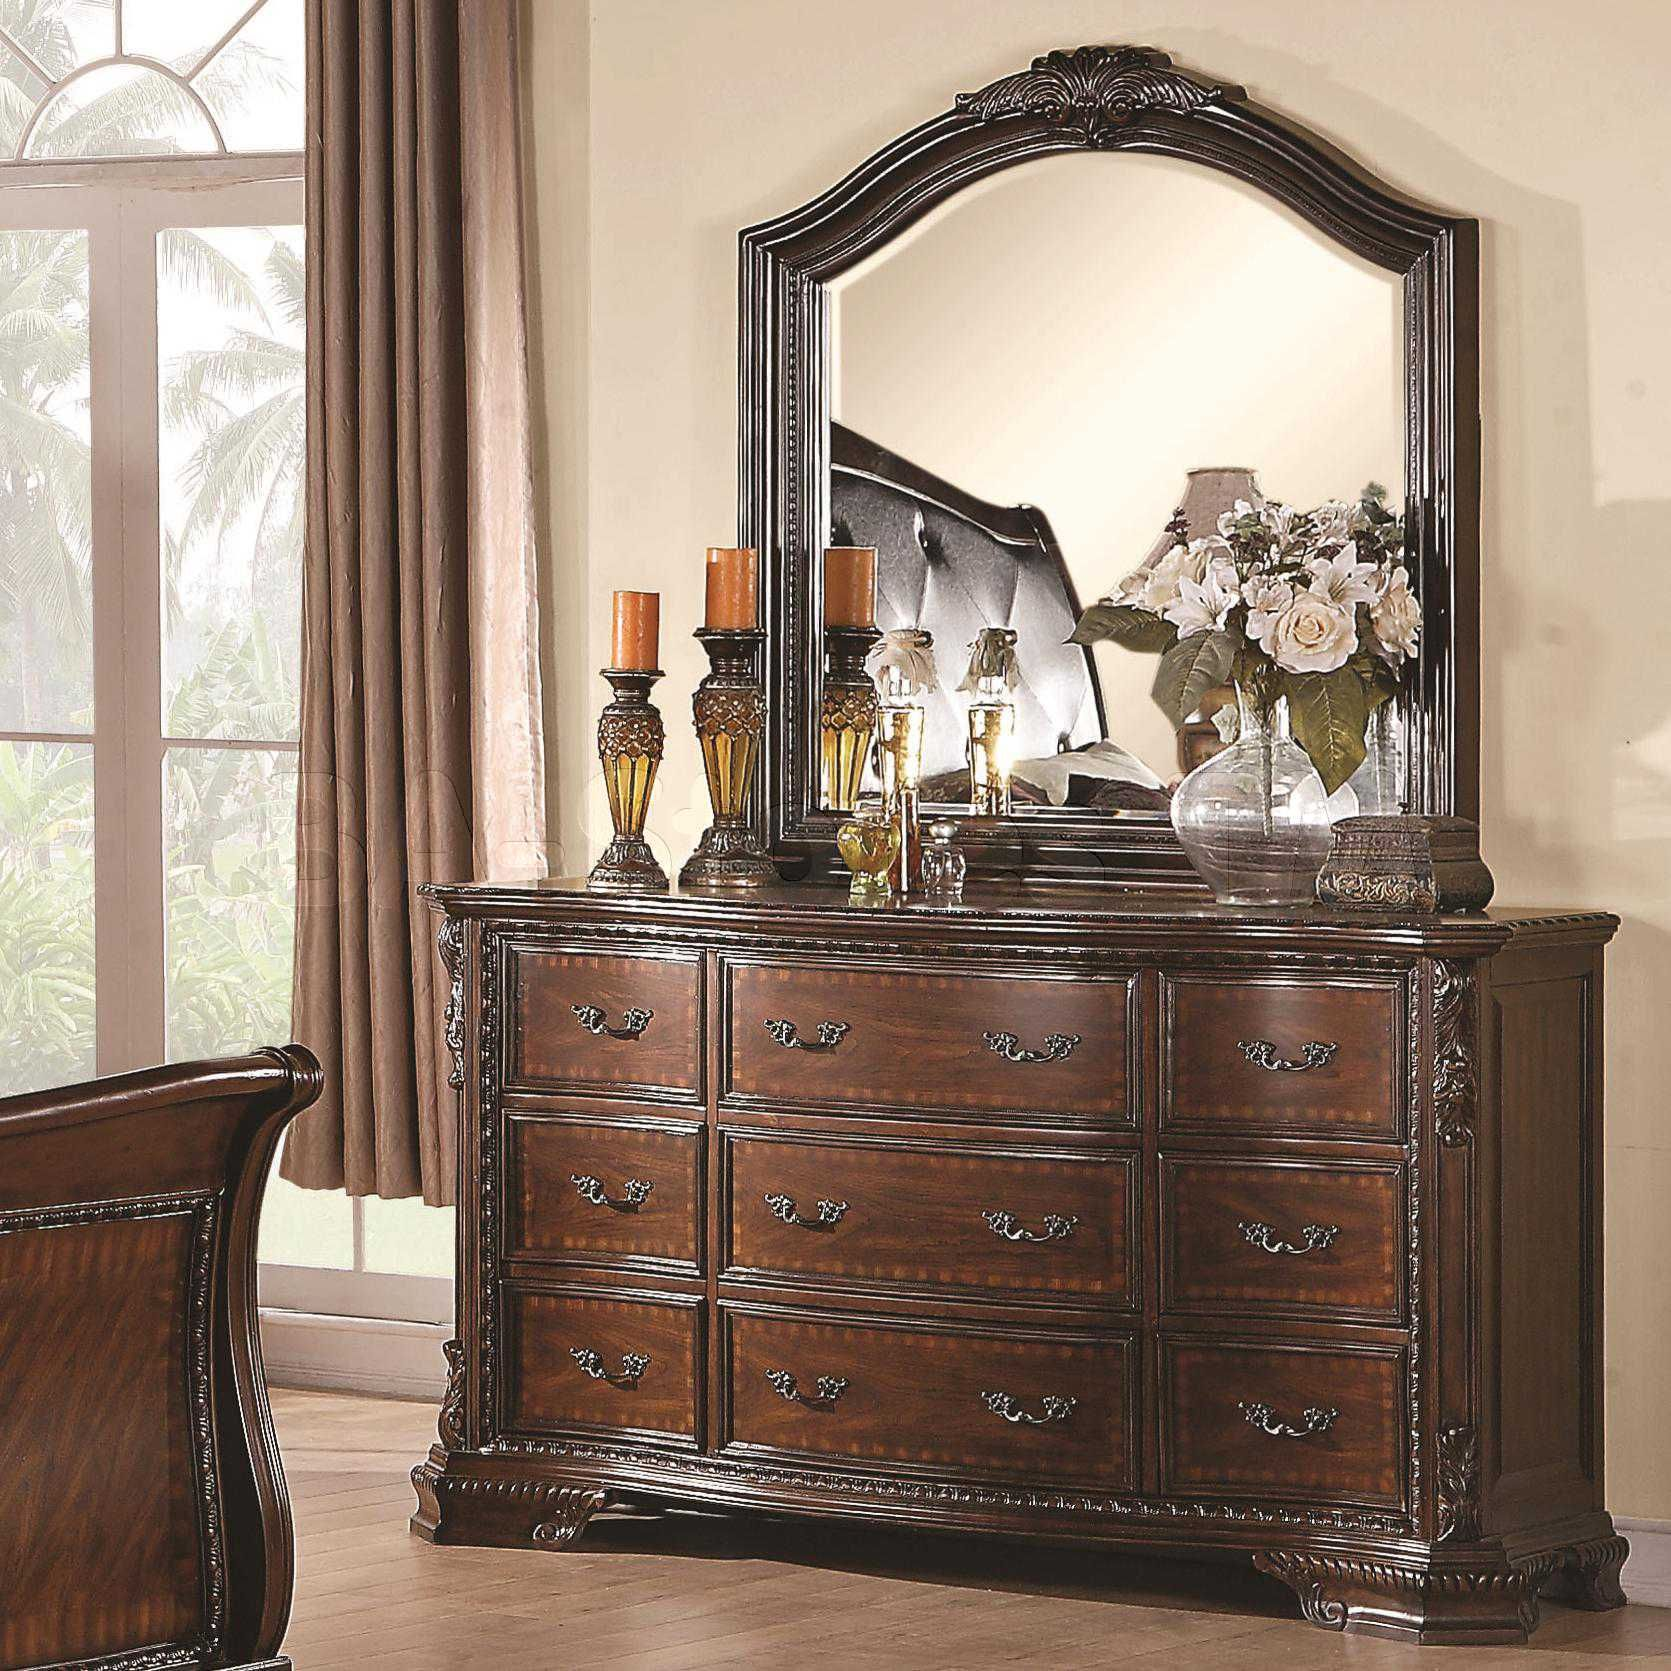 Bedroom Dresser Mirror Ideas